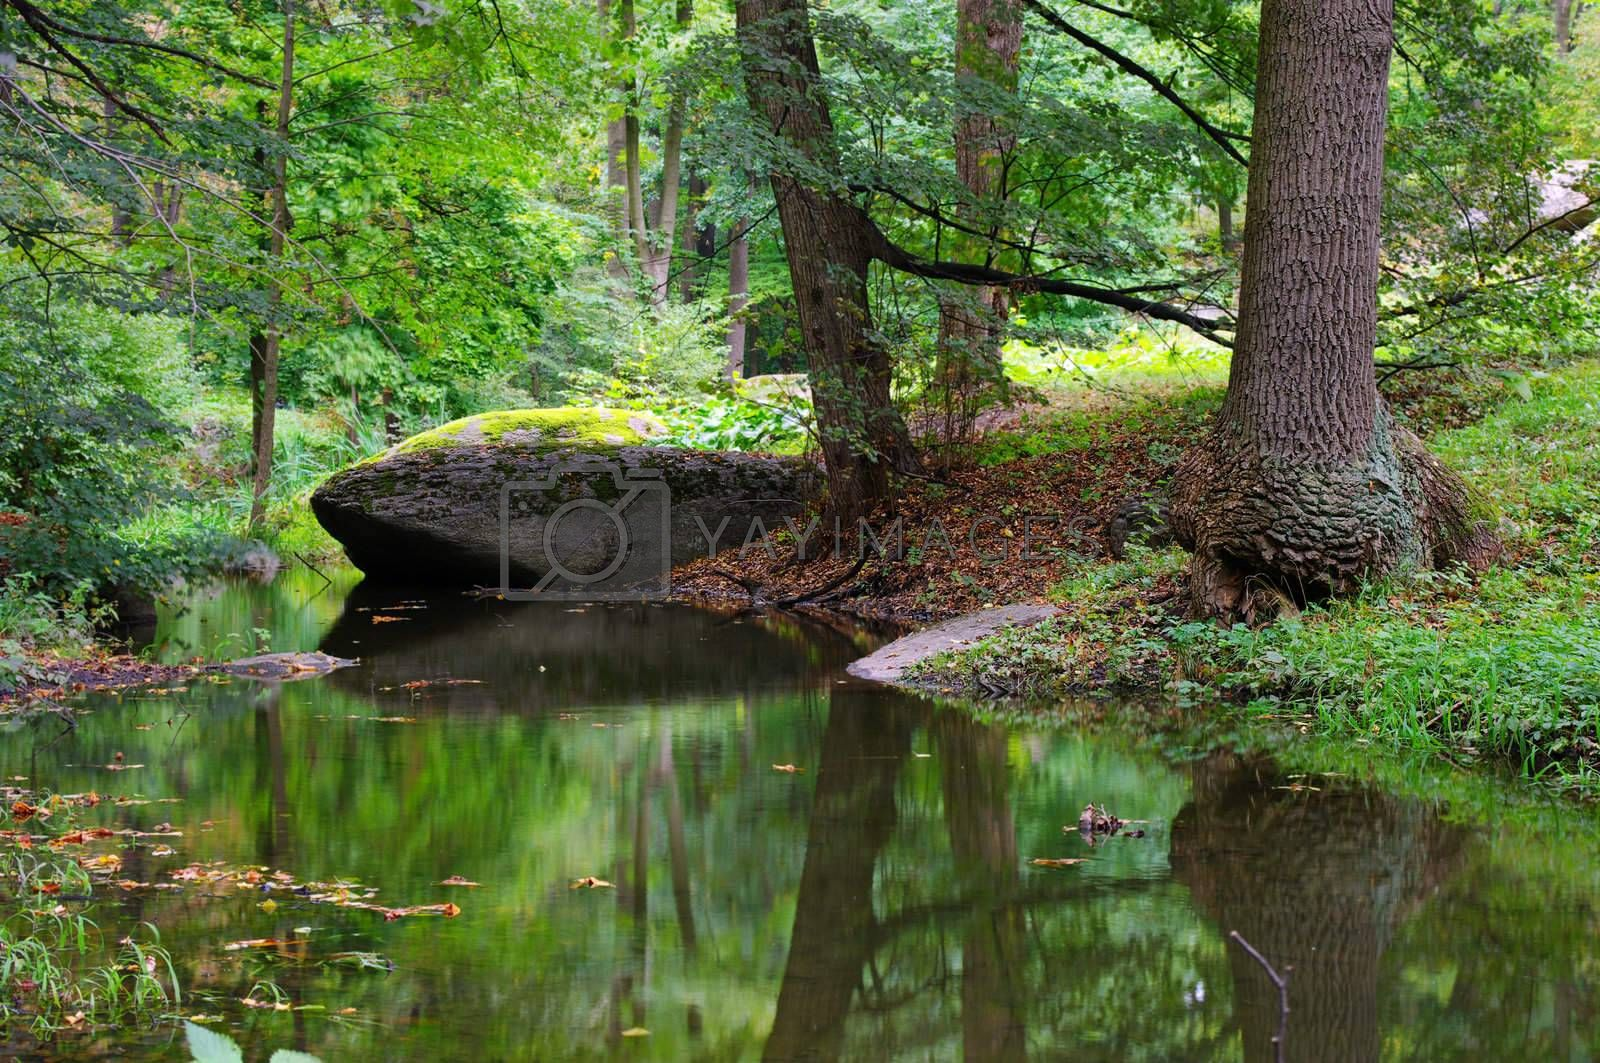 Royalty free image of green forest and river with big stone by dolnikow